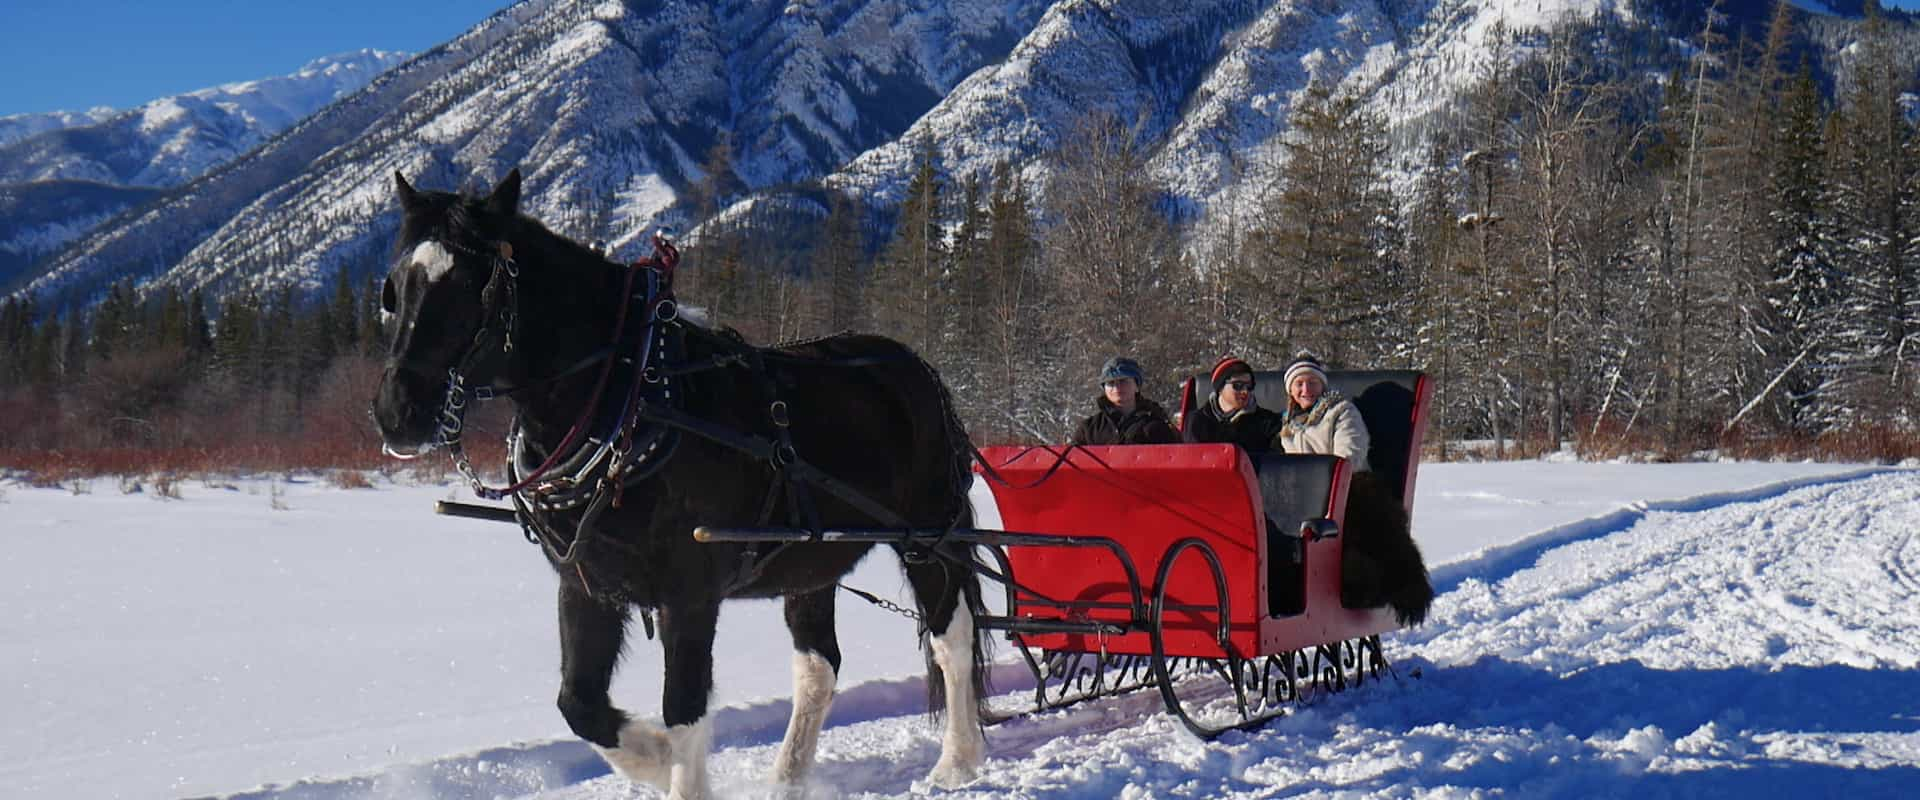 banff private sleigh ride discover banff tours